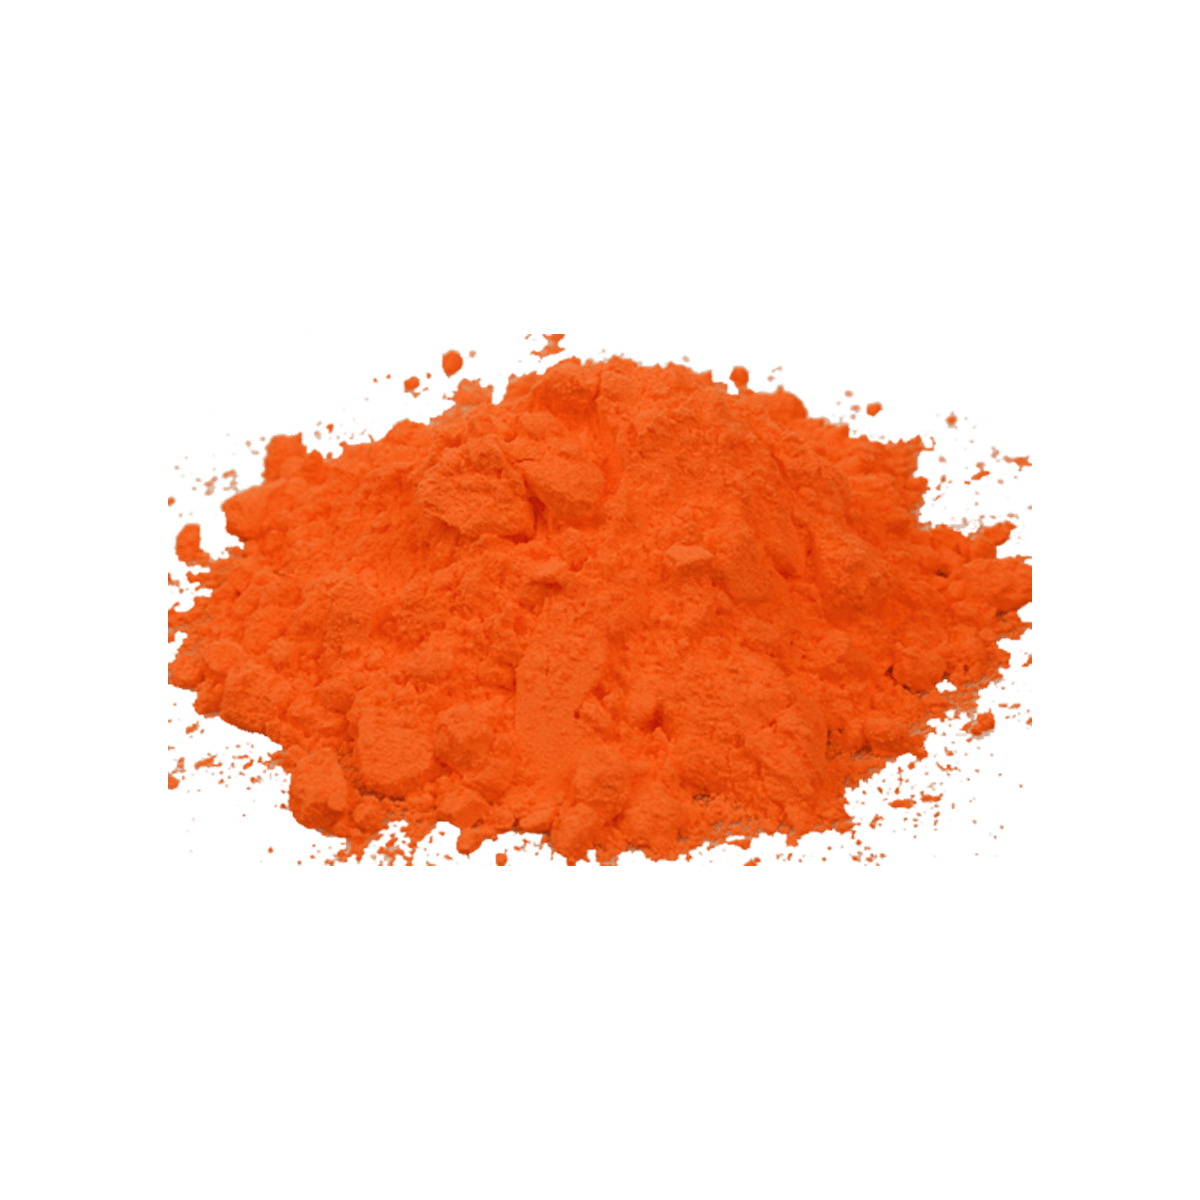 Image with transparent background. Orange smoke png